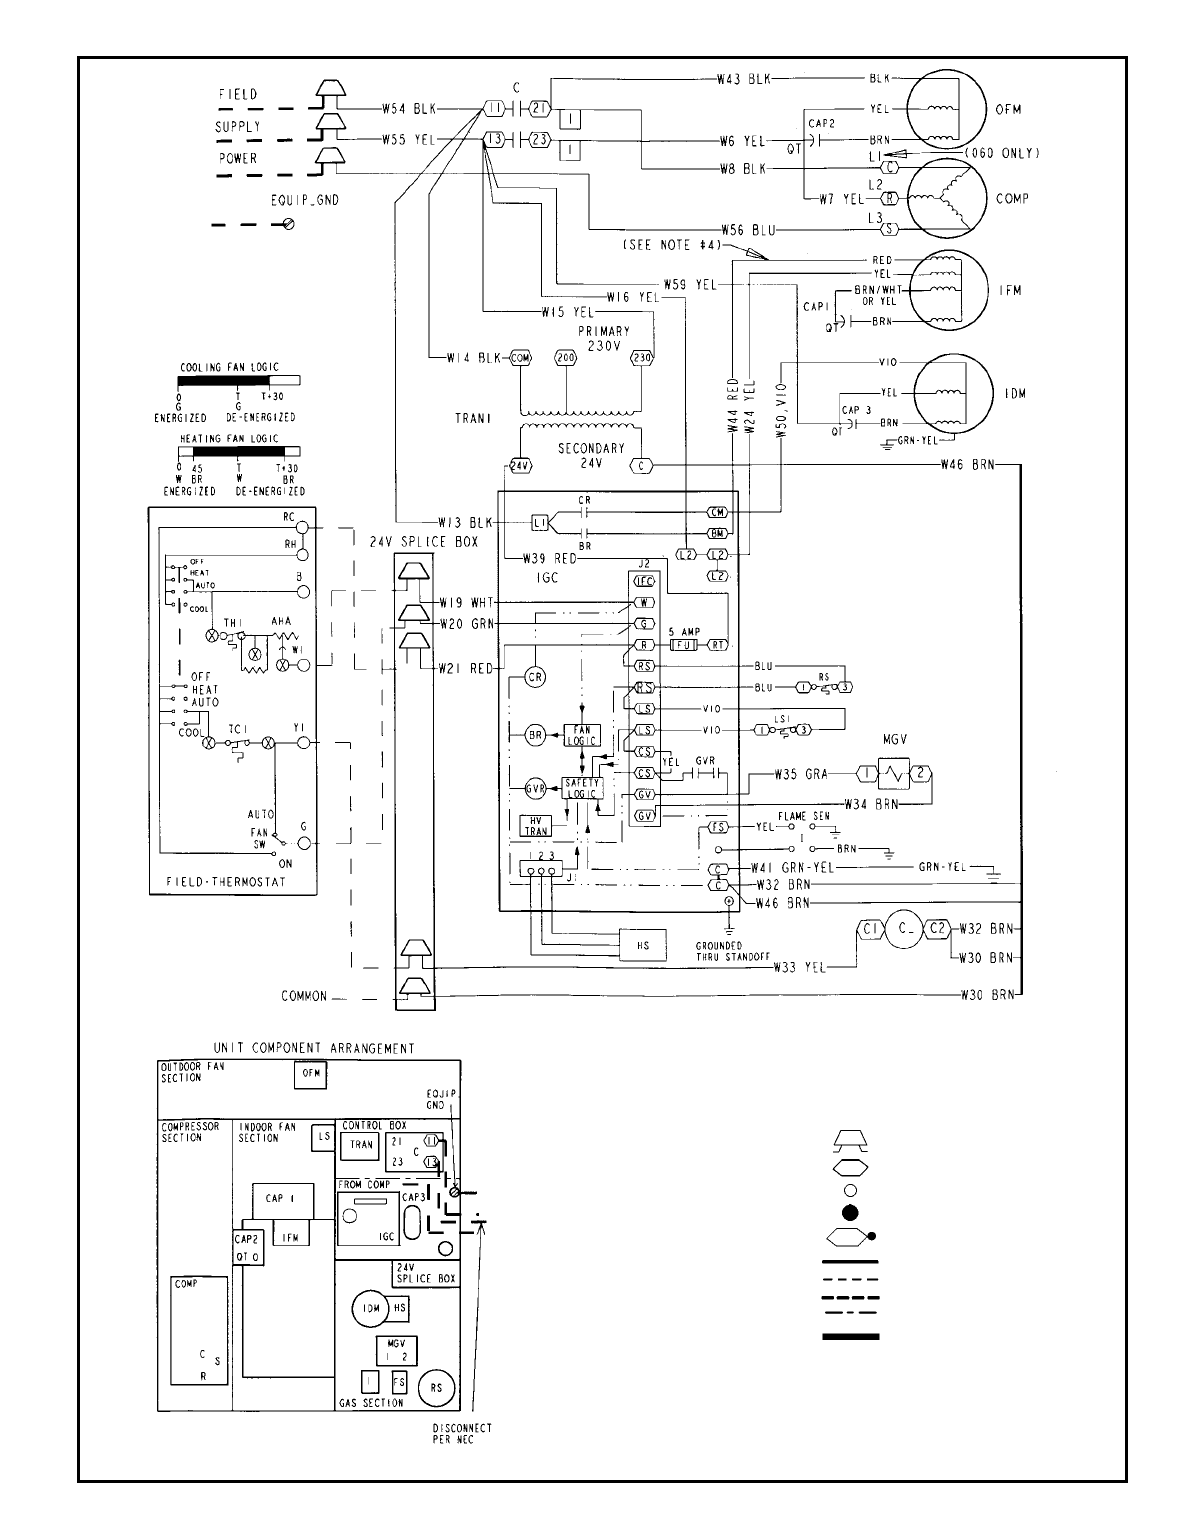 Bryant 582a Typical Wiring Schematic 582a030 060 208 230